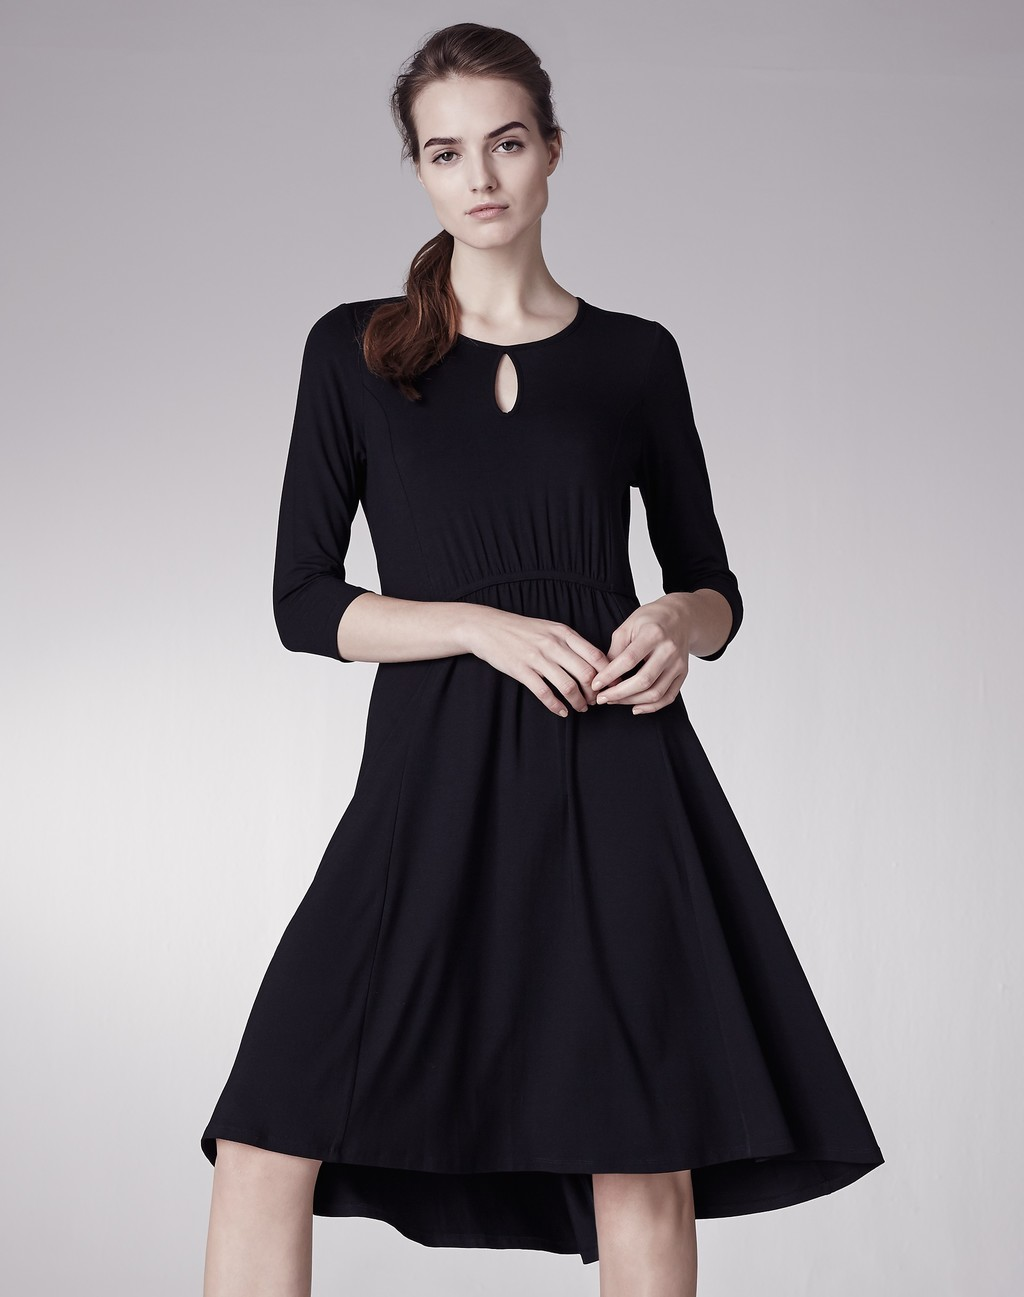 Dipped Hem Tie Waist Dress Black - pattern: plain; predominant colour: black; length: on the knee; fit: fitted at waist & bust; style: fit & flare; neckline: peep hole neckline; fibres: polyester/polyamide - stretch; occasions: occasion; hip detail: subtle/flattering hip detail; sleeve length: 3/4 length; sleeve style: standard; pattern type: fabric; texture group: jersey - stretchy/drapey; season: s/s 2016; wardrobe: event